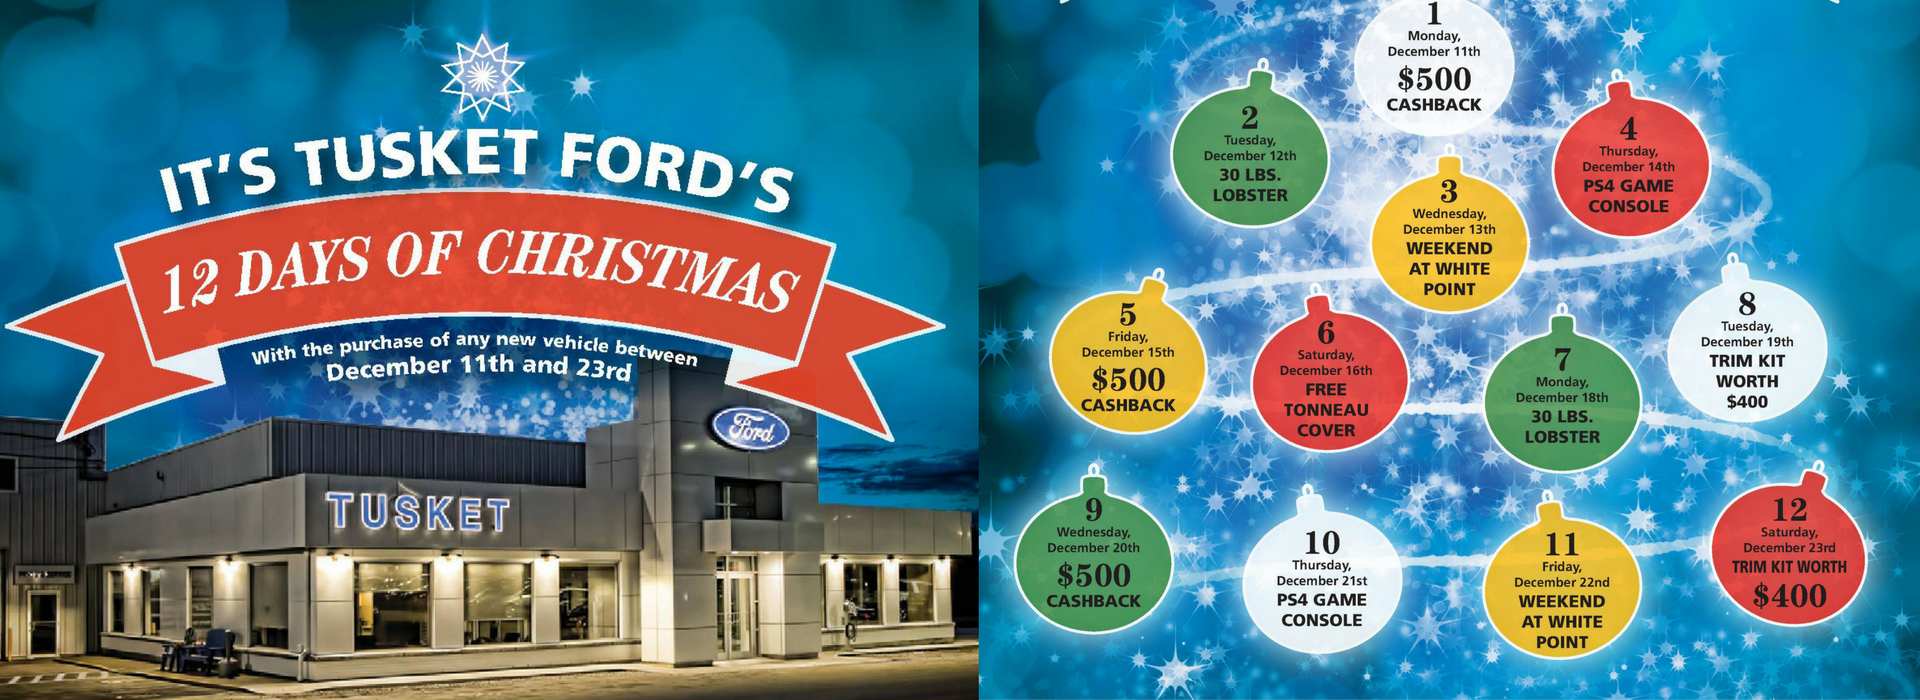 Tusket Ford 12 Days Christmas Event